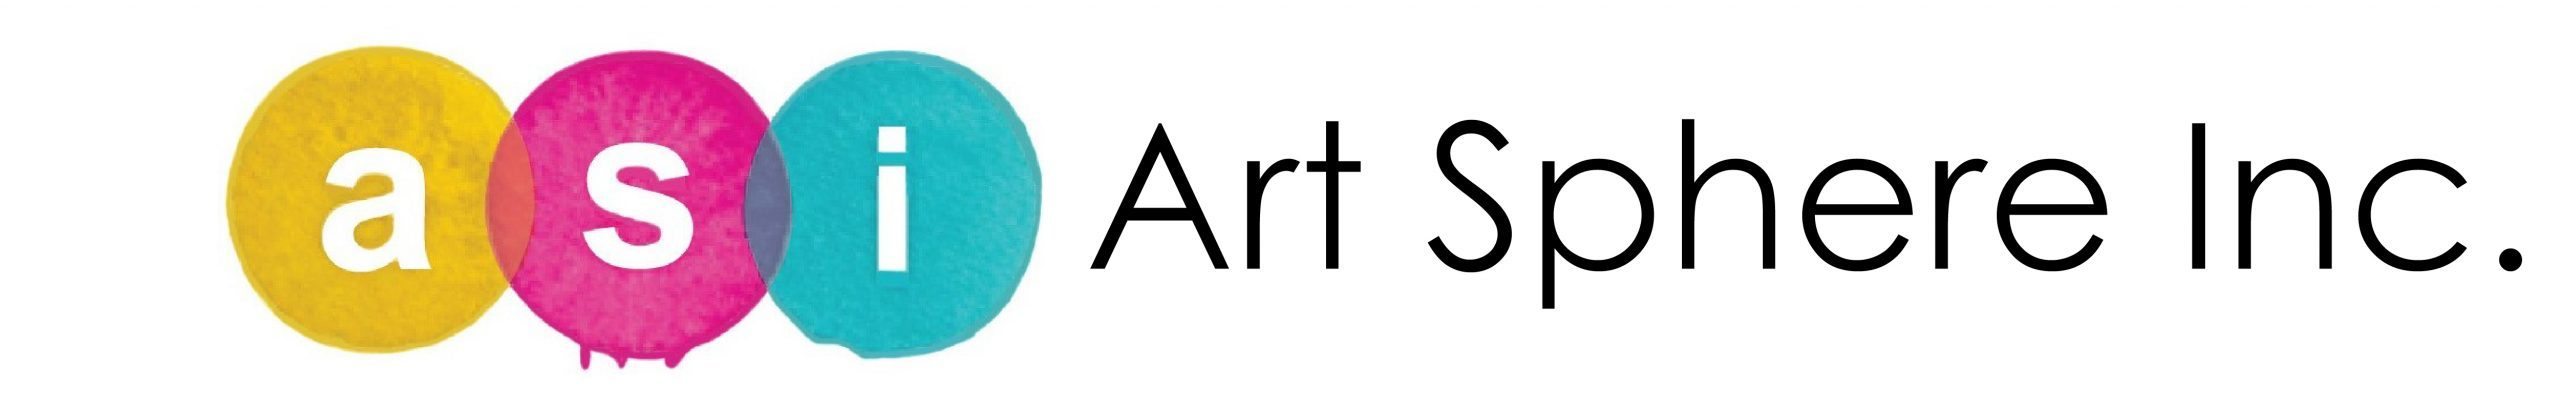 Art Sphere Inc.